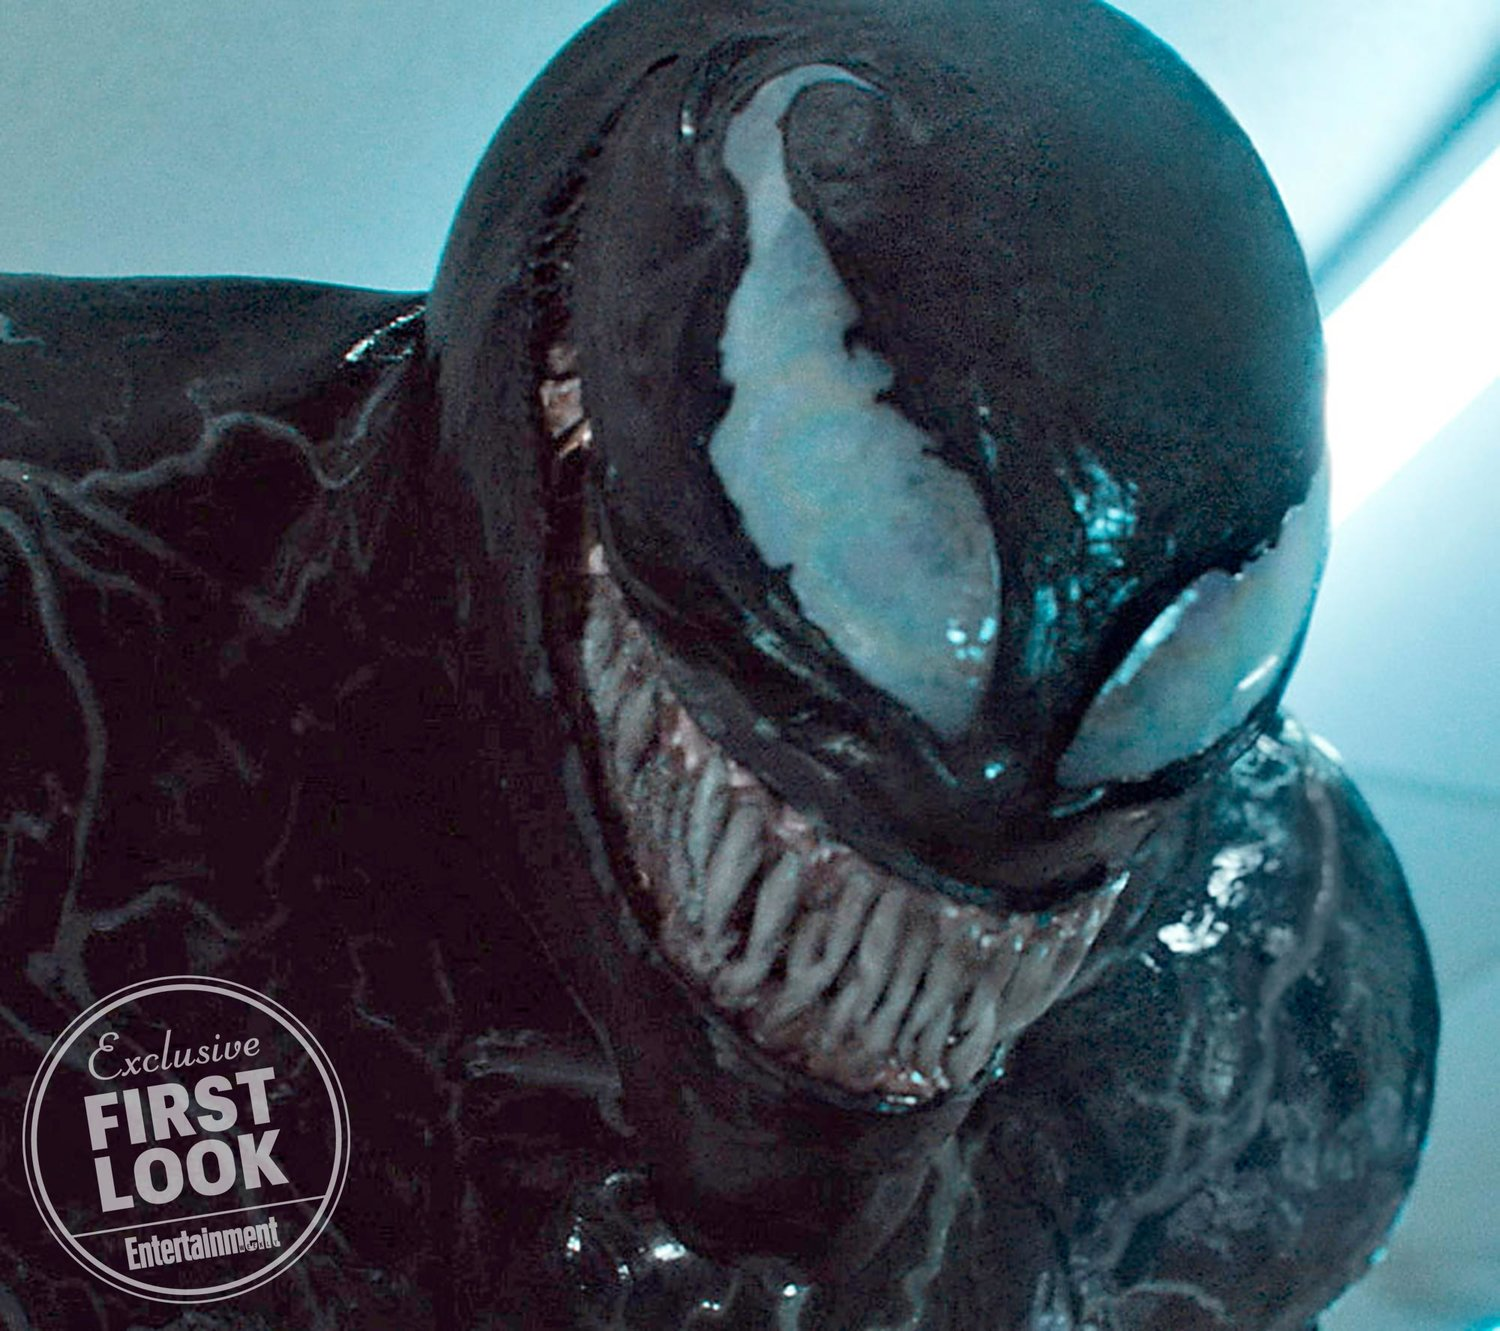 venom-is-shows-off-his-sinister-grin-in-new-photos-from-the-upcoming-film1